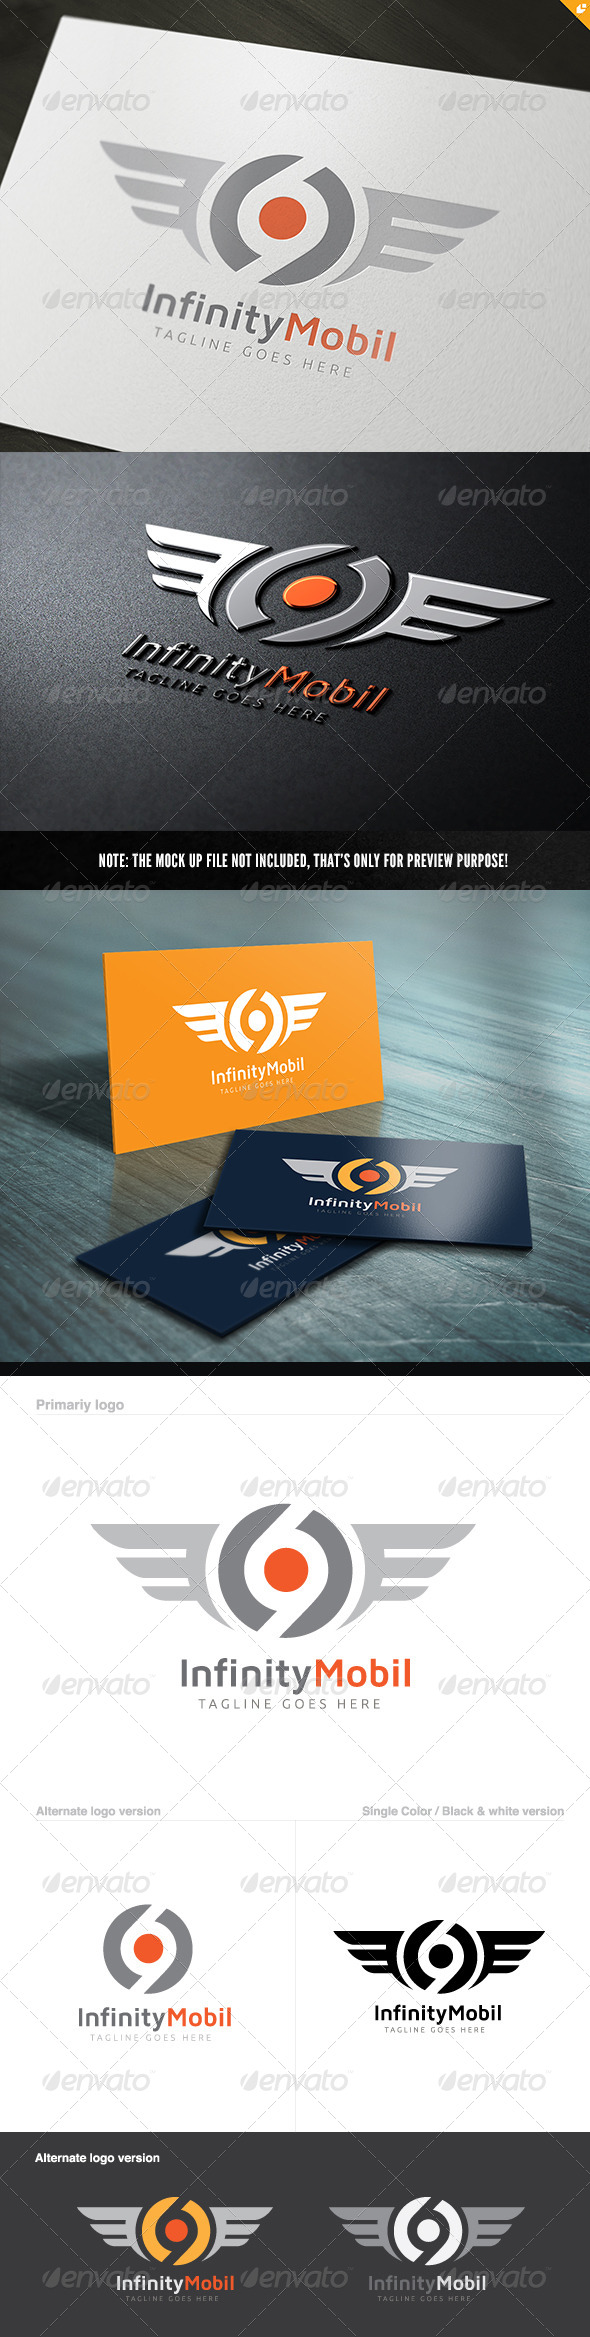 GraphicRiver Infinity Mobil Logo 5608964